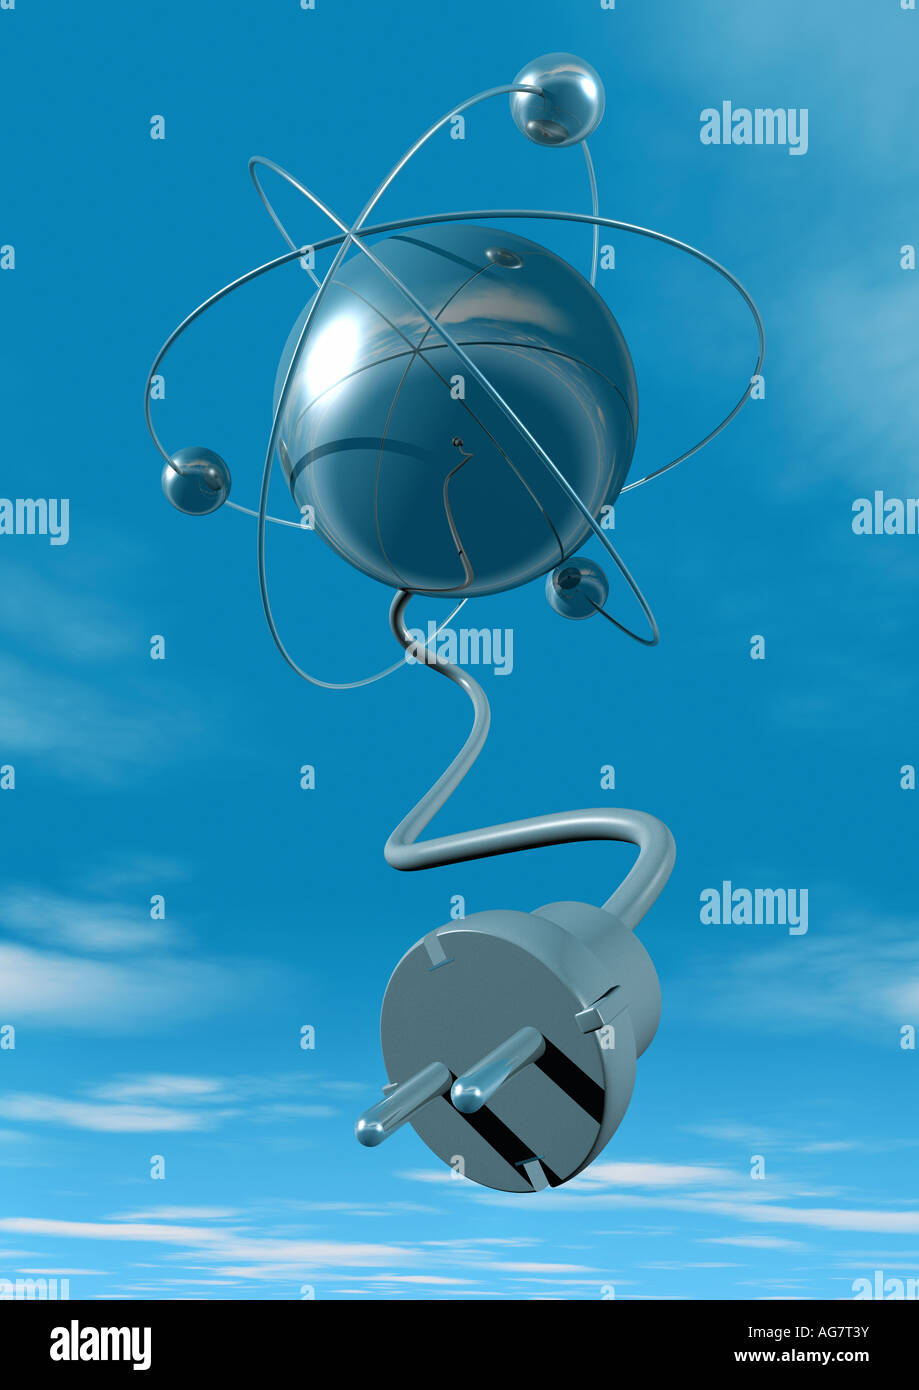 nuclear energy Kernenergie Atomstrom Stock Photo